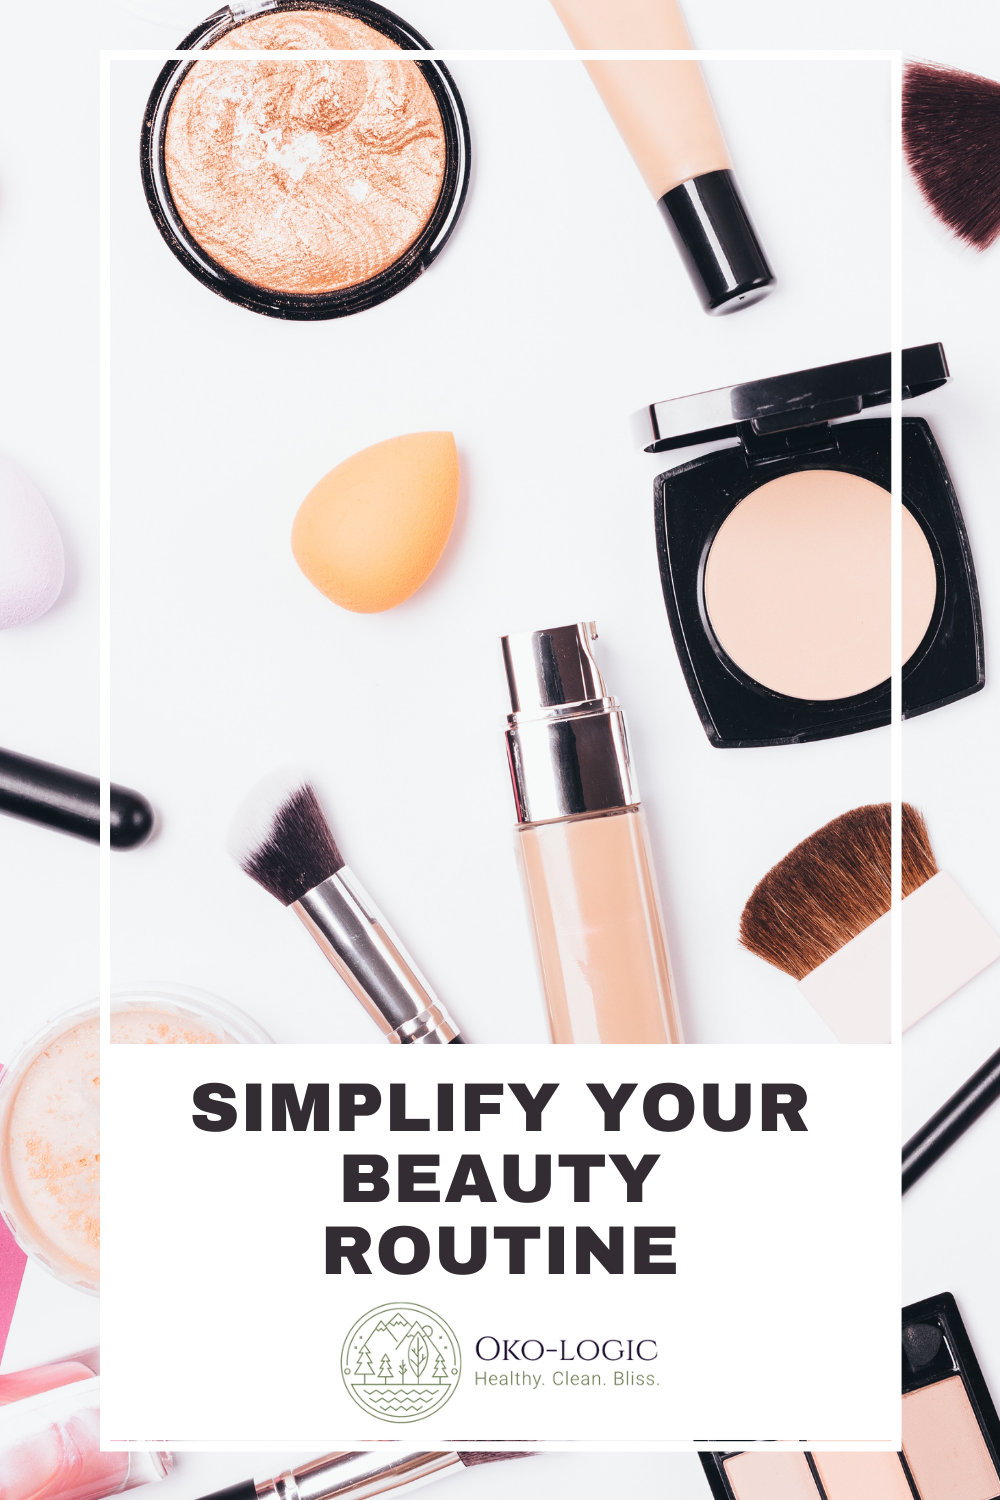 Simplify Your Daily Skin Regimen to a Few Effective Steps